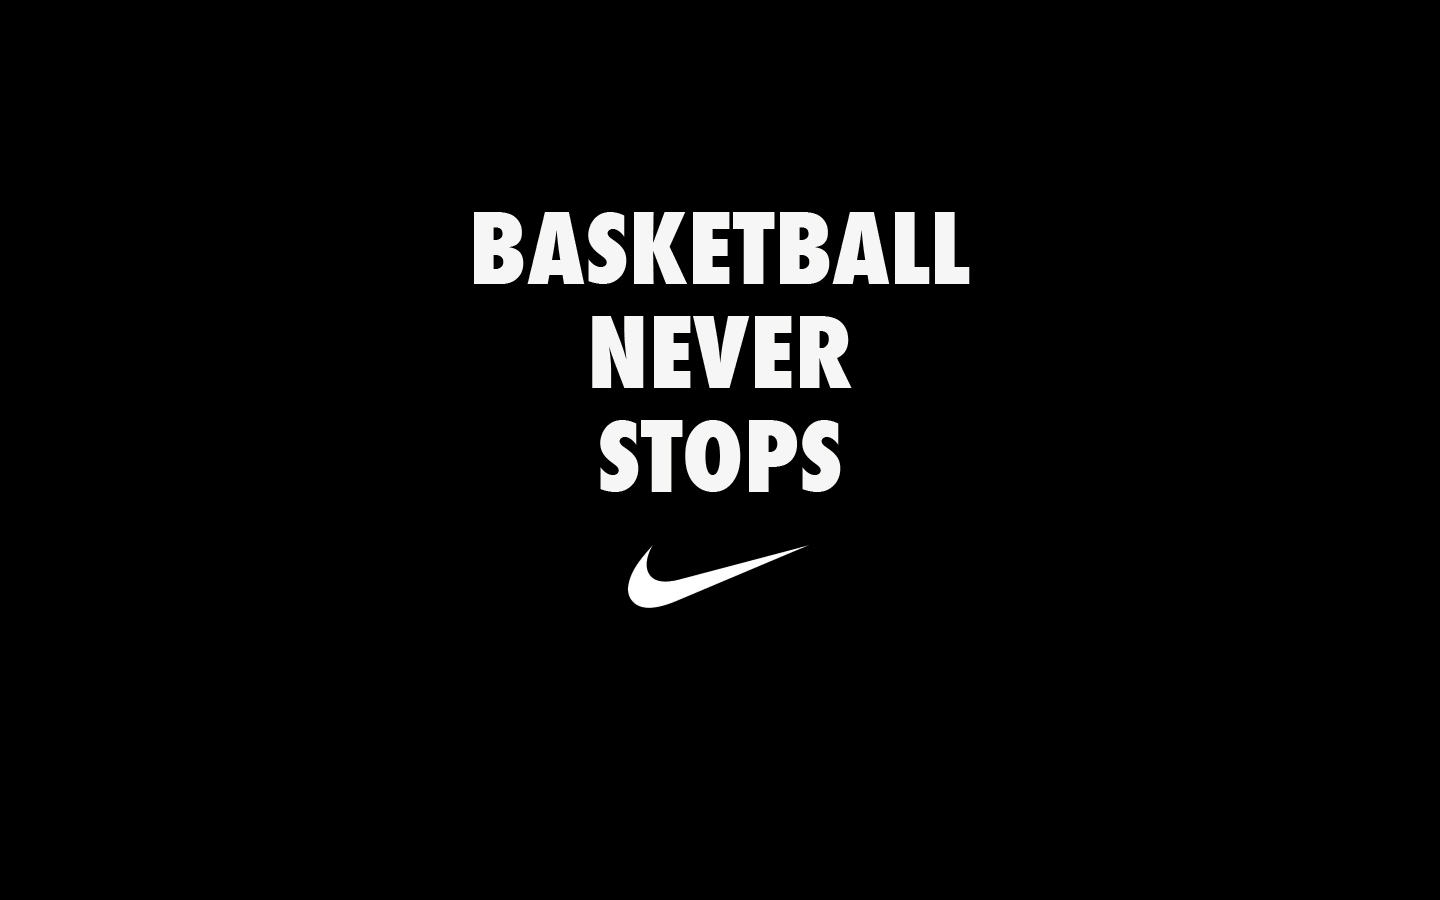 Cool Basketball Wallpapers The Art Mad Wallpapers 1440x900